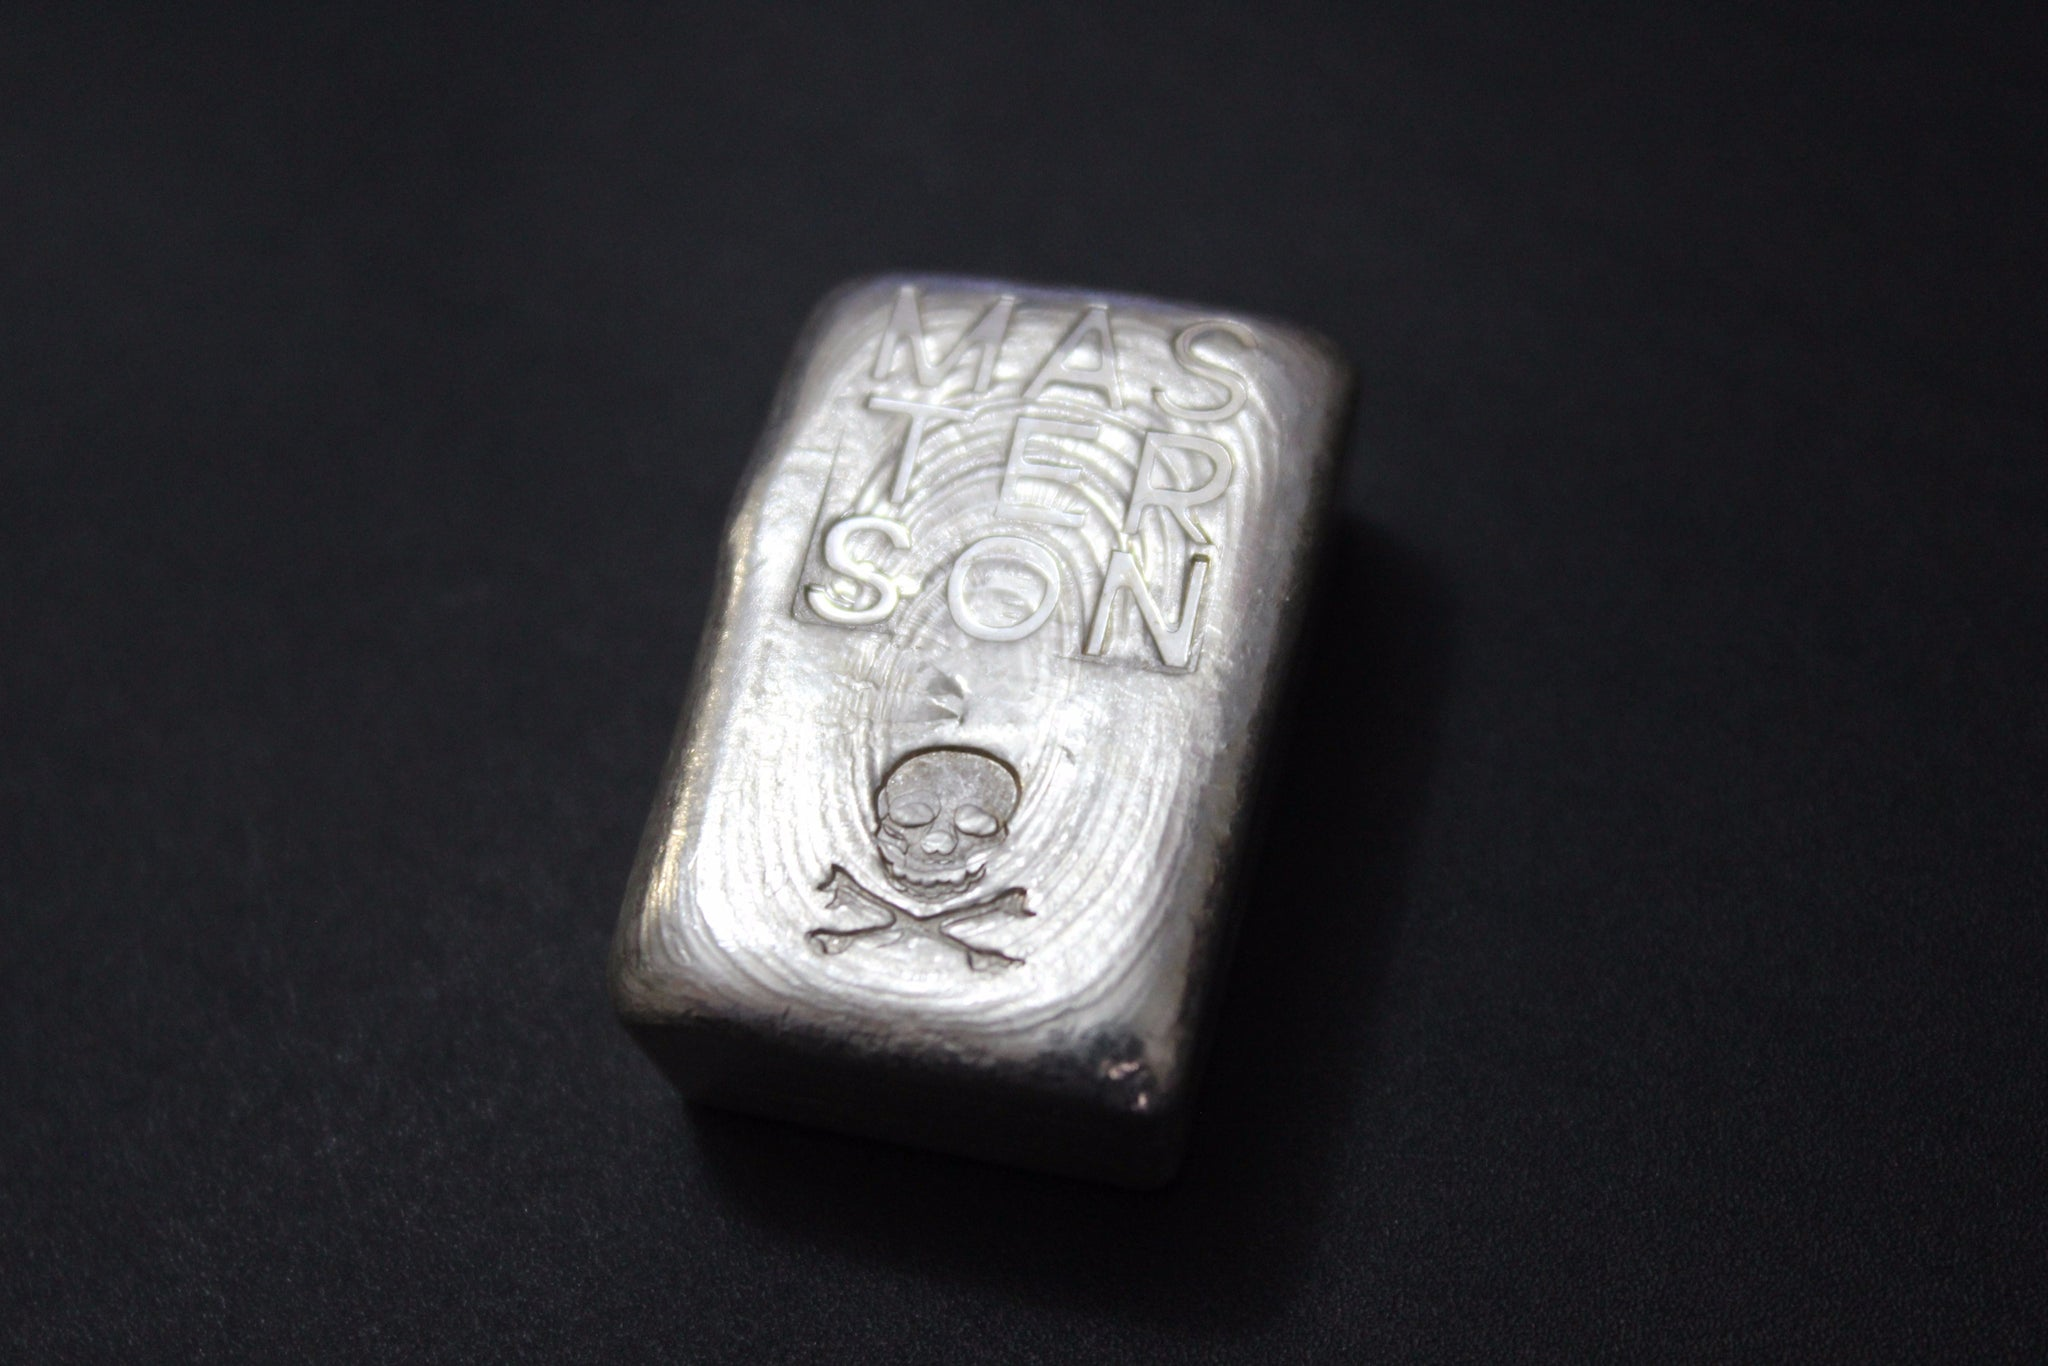 Masterson Hand Poured 3 oz .999 Pure Silver Bar